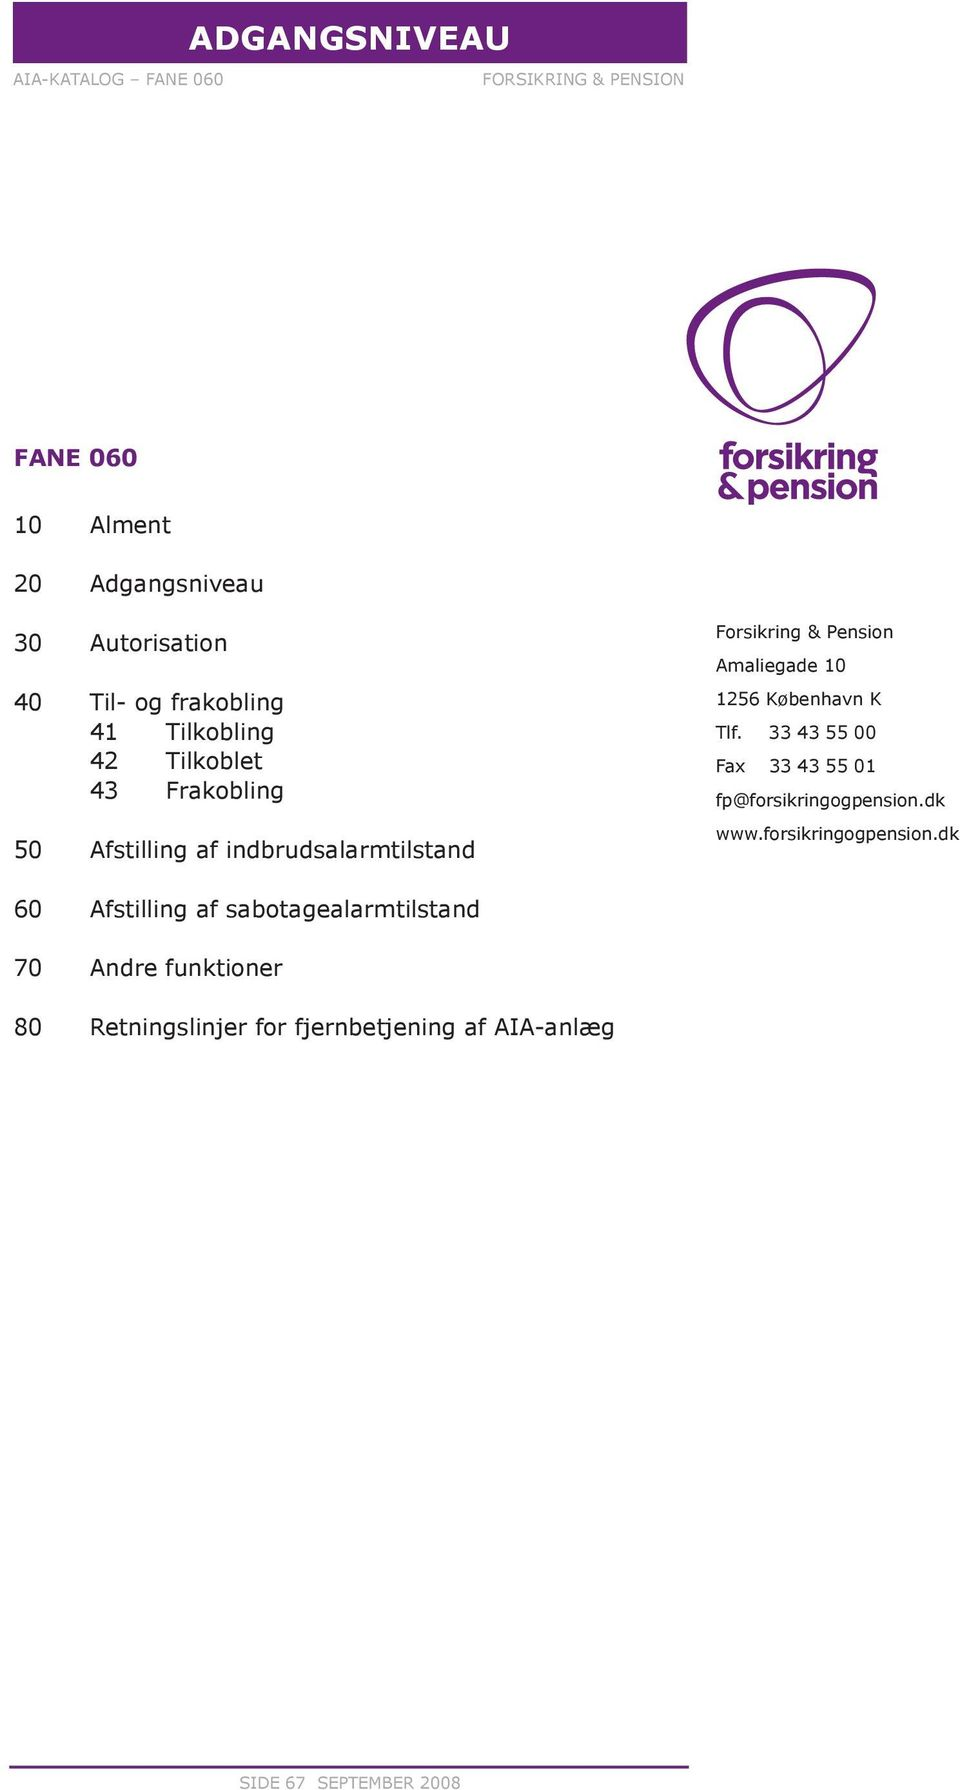 33 43 55 00 Fax 33 43 55 01 fp@forsikringogpension.